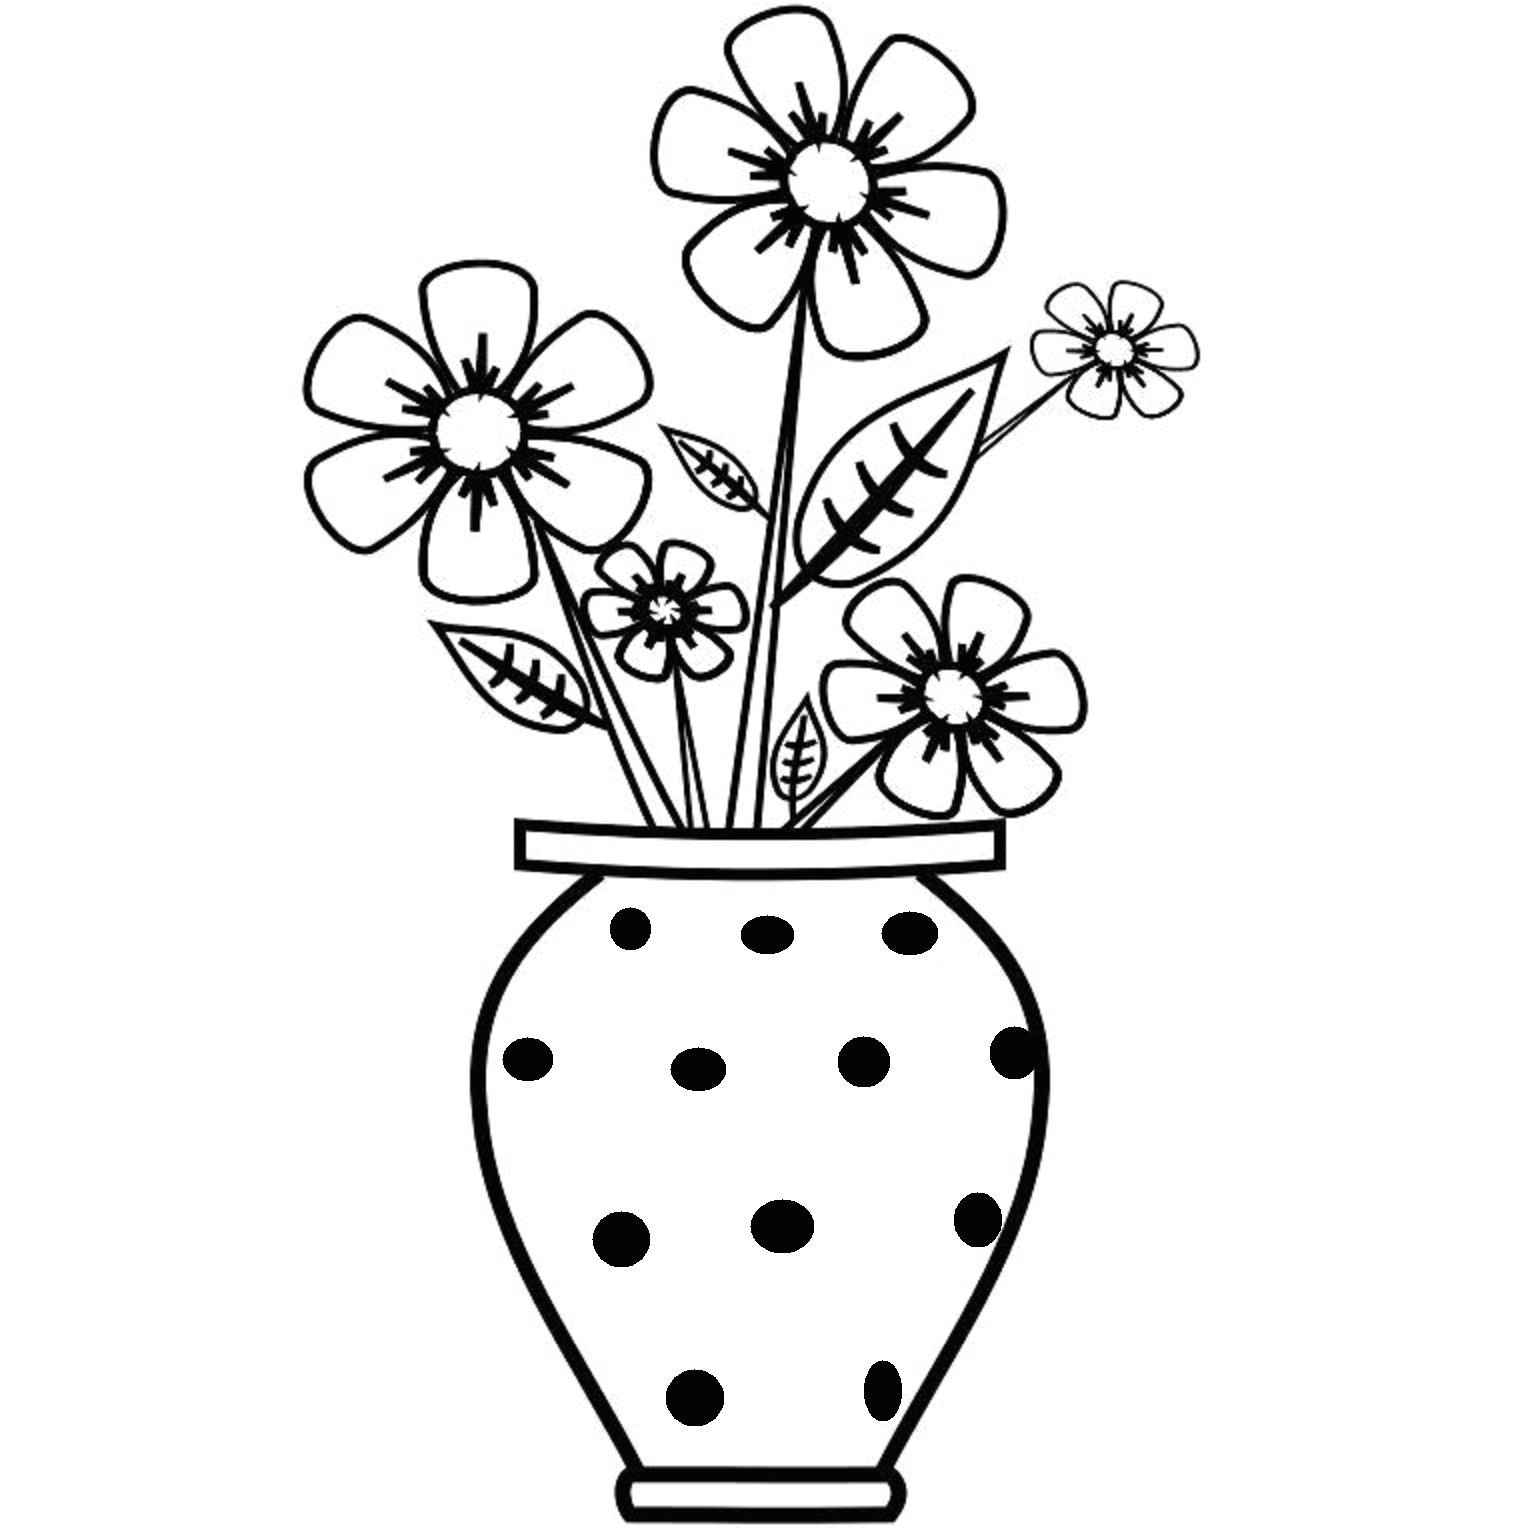 flowers to draw easy step by step flower pot for drawing sketches pinterest of flowers to